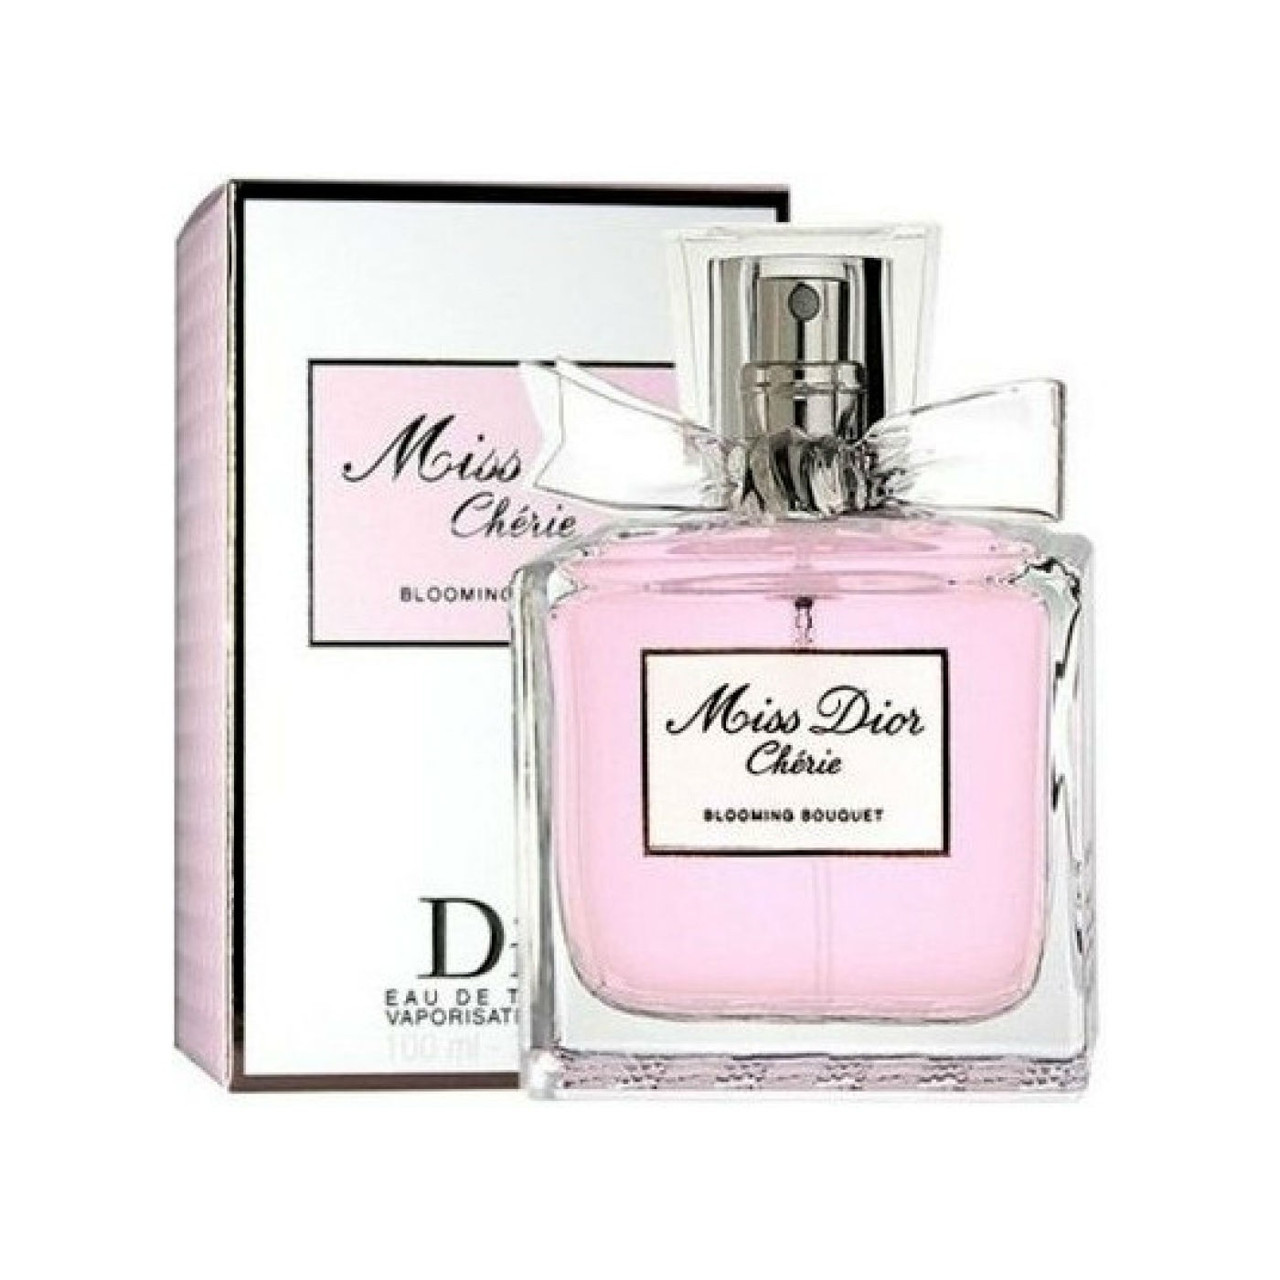 """Christian Dior """"Miss Dior Cherie Blooming Bouquet"""" 100 ml"""